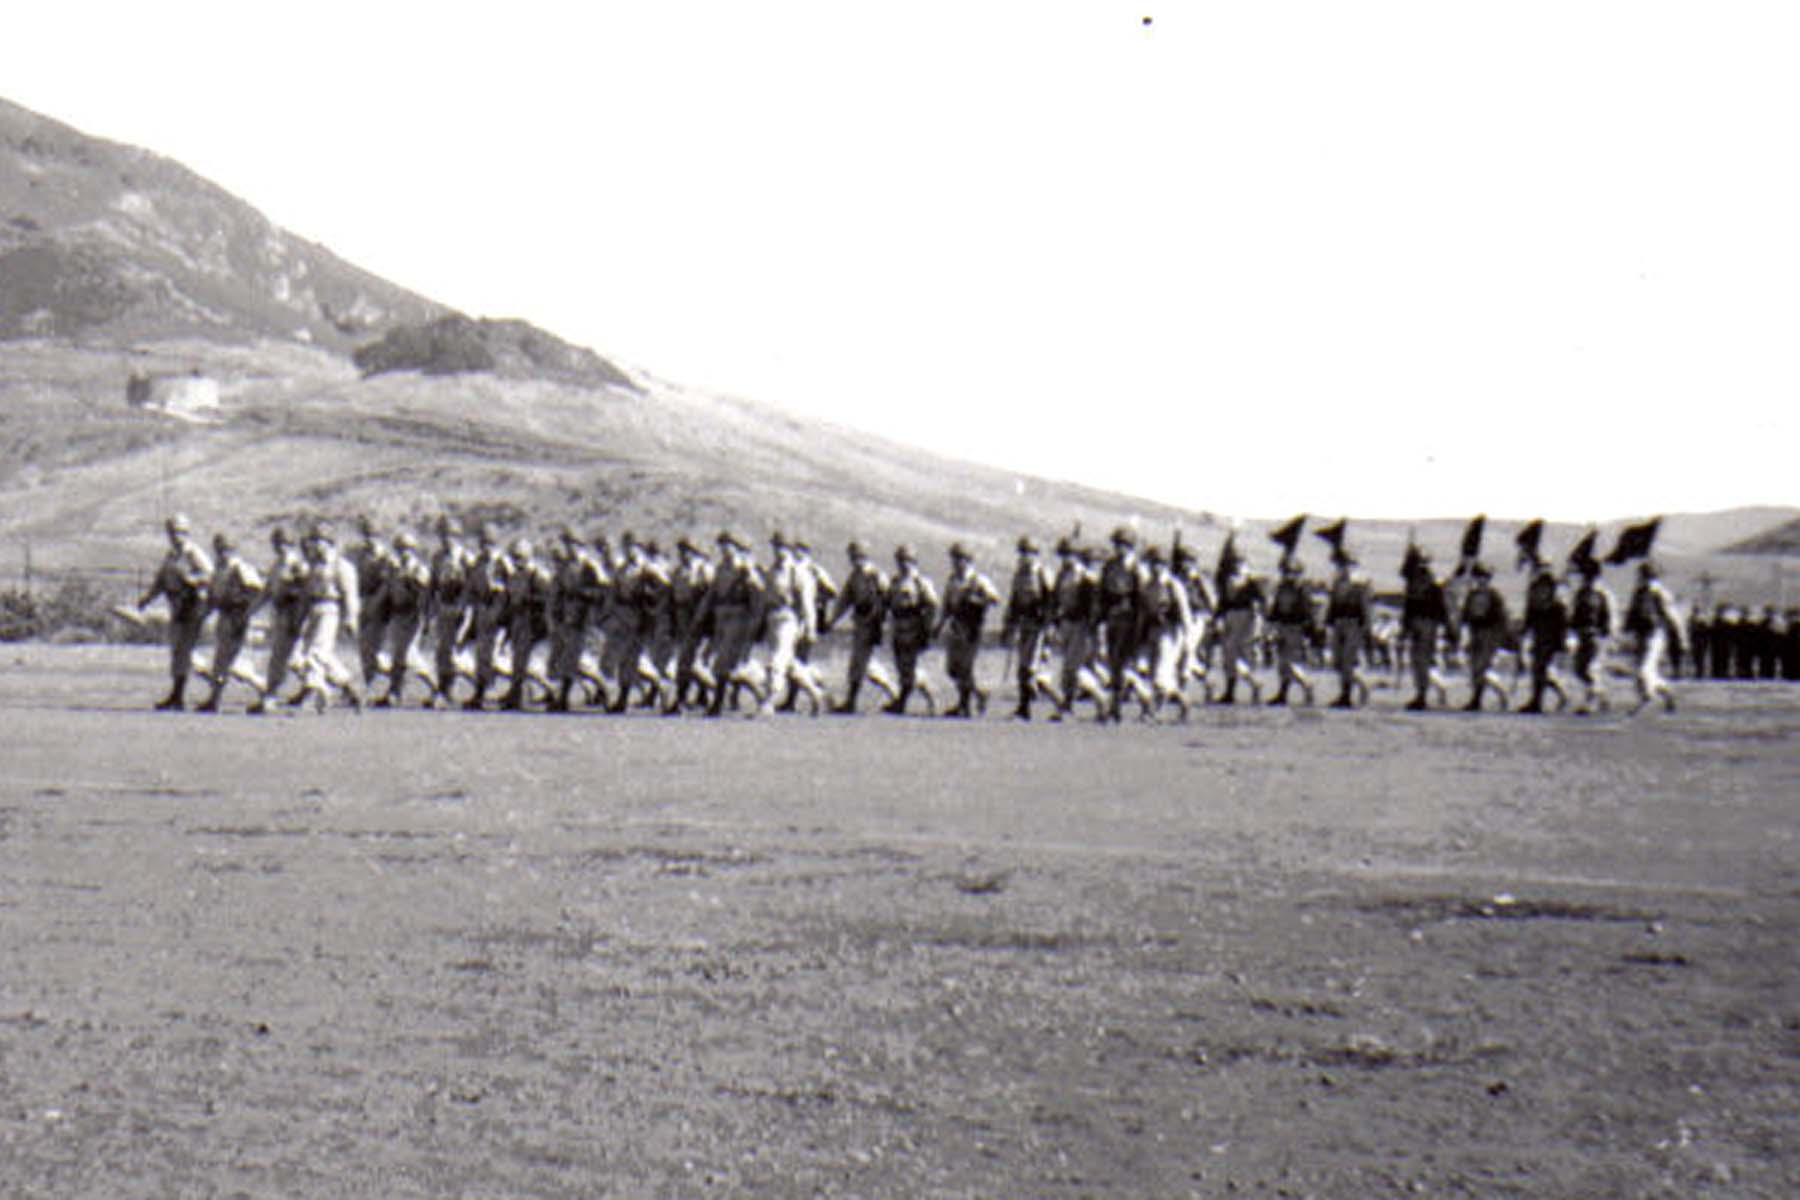 C25 Camp San Luis Obispo - August 2_ 1943 parade - Officers and guidons _front and center_